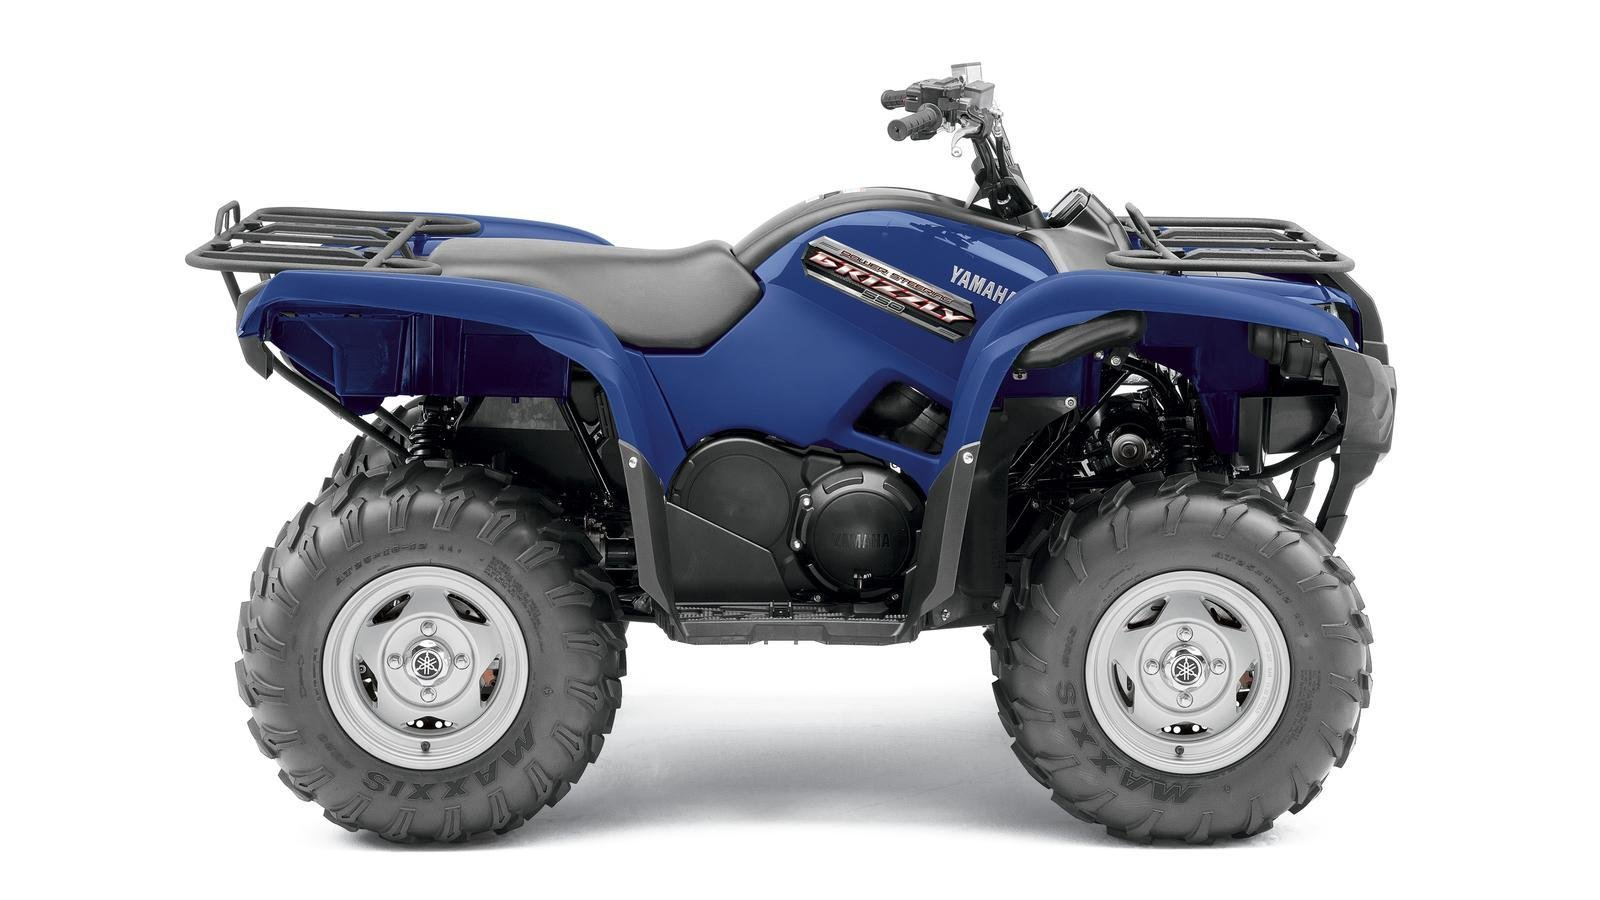 2013 yamaha grizzly 550 eps 500 eps se picture 460945 for Yamaha grizzly 50